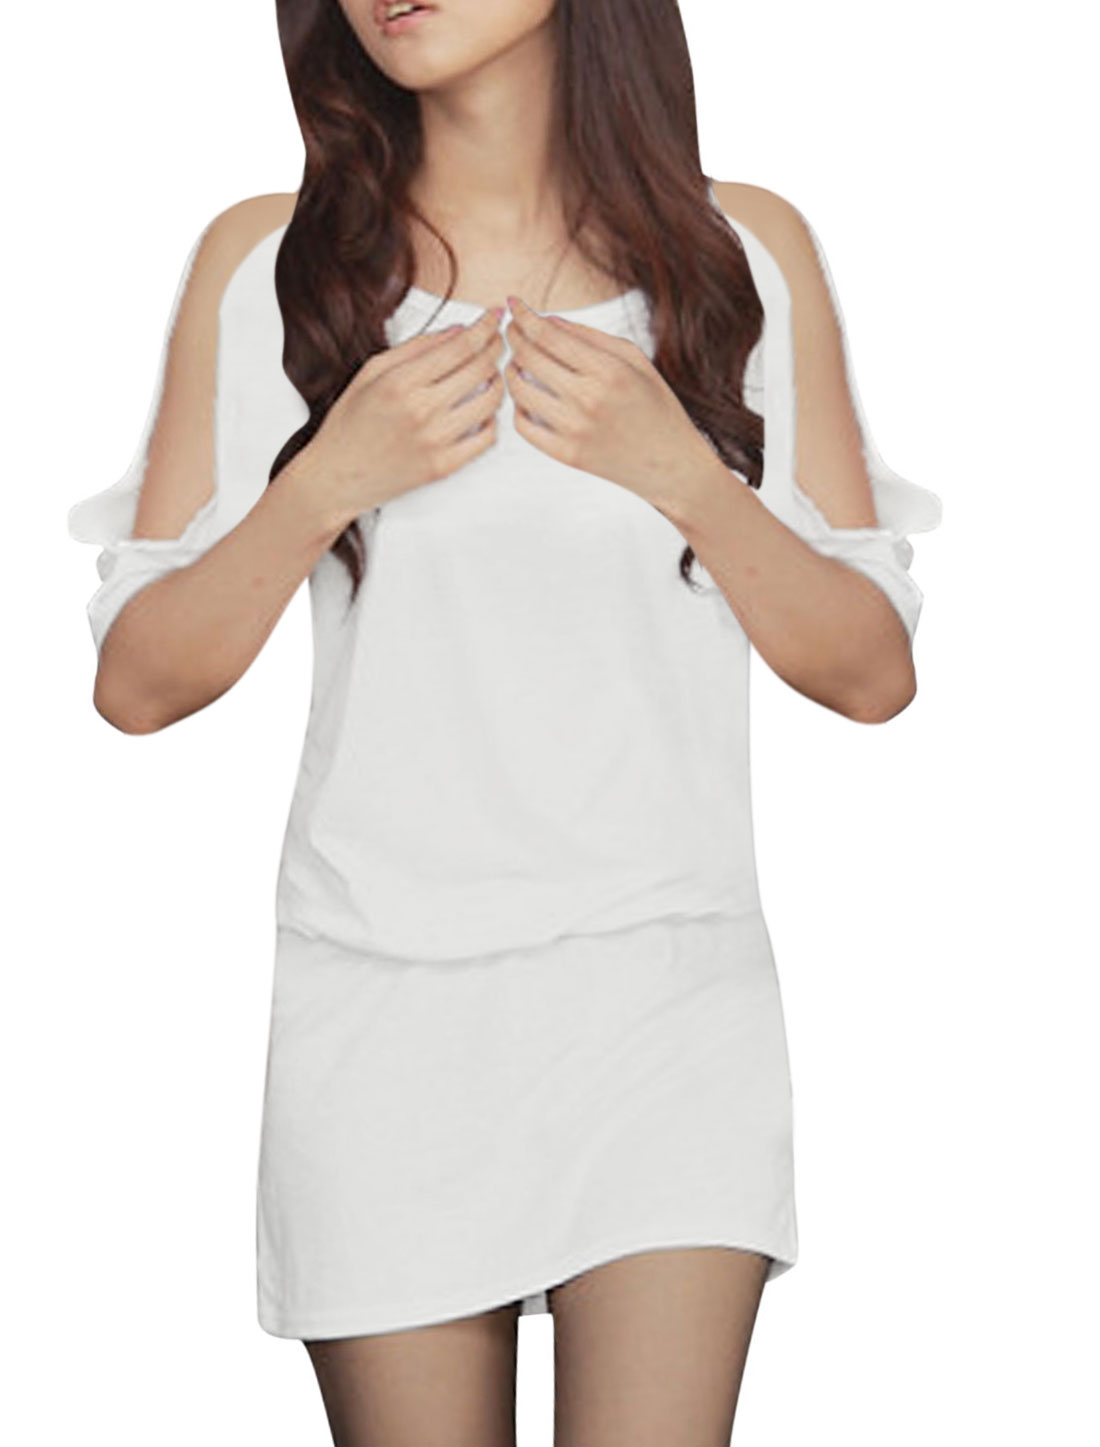 Lady Round Neck Short Sleeve Elastic Waist Blouson Dress White S